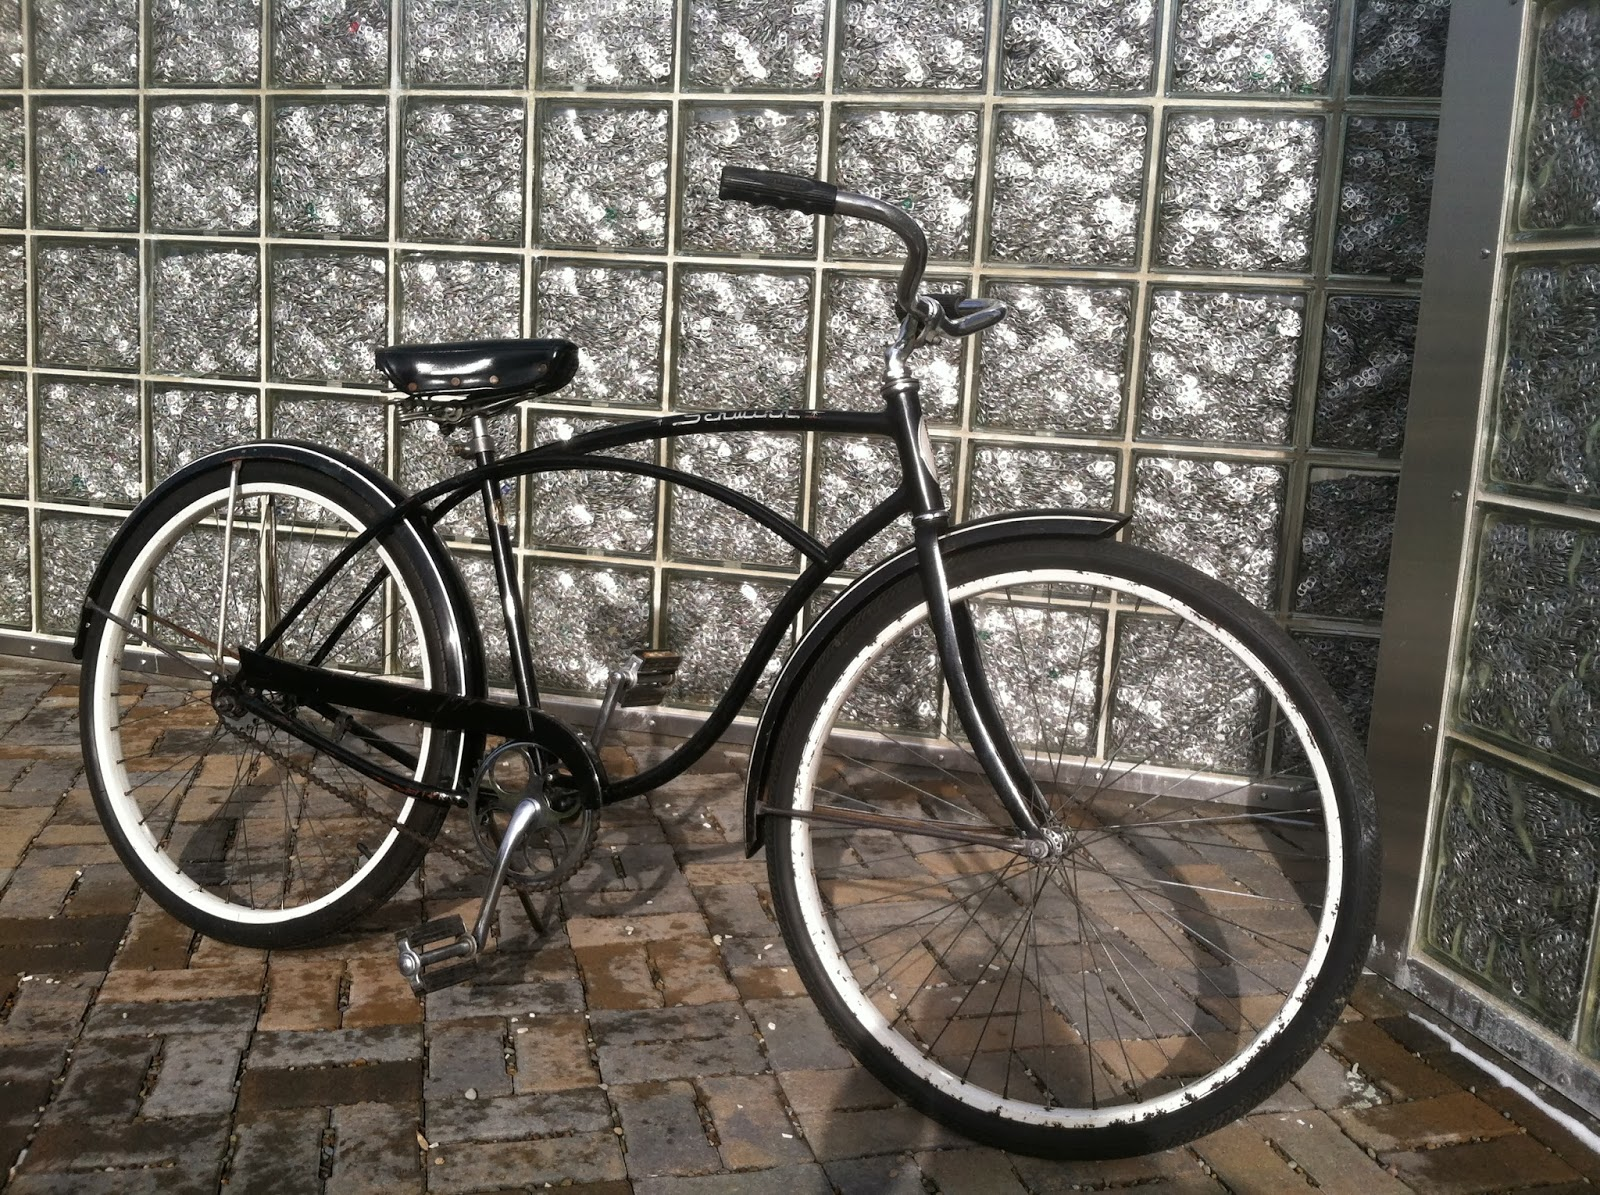 23f32117670 This is a vintage Schwinn that tells a story. It has been dissembled,  cleaned, reassembled, tuned, and is ready to ride. Though the frame has  plenty of ...